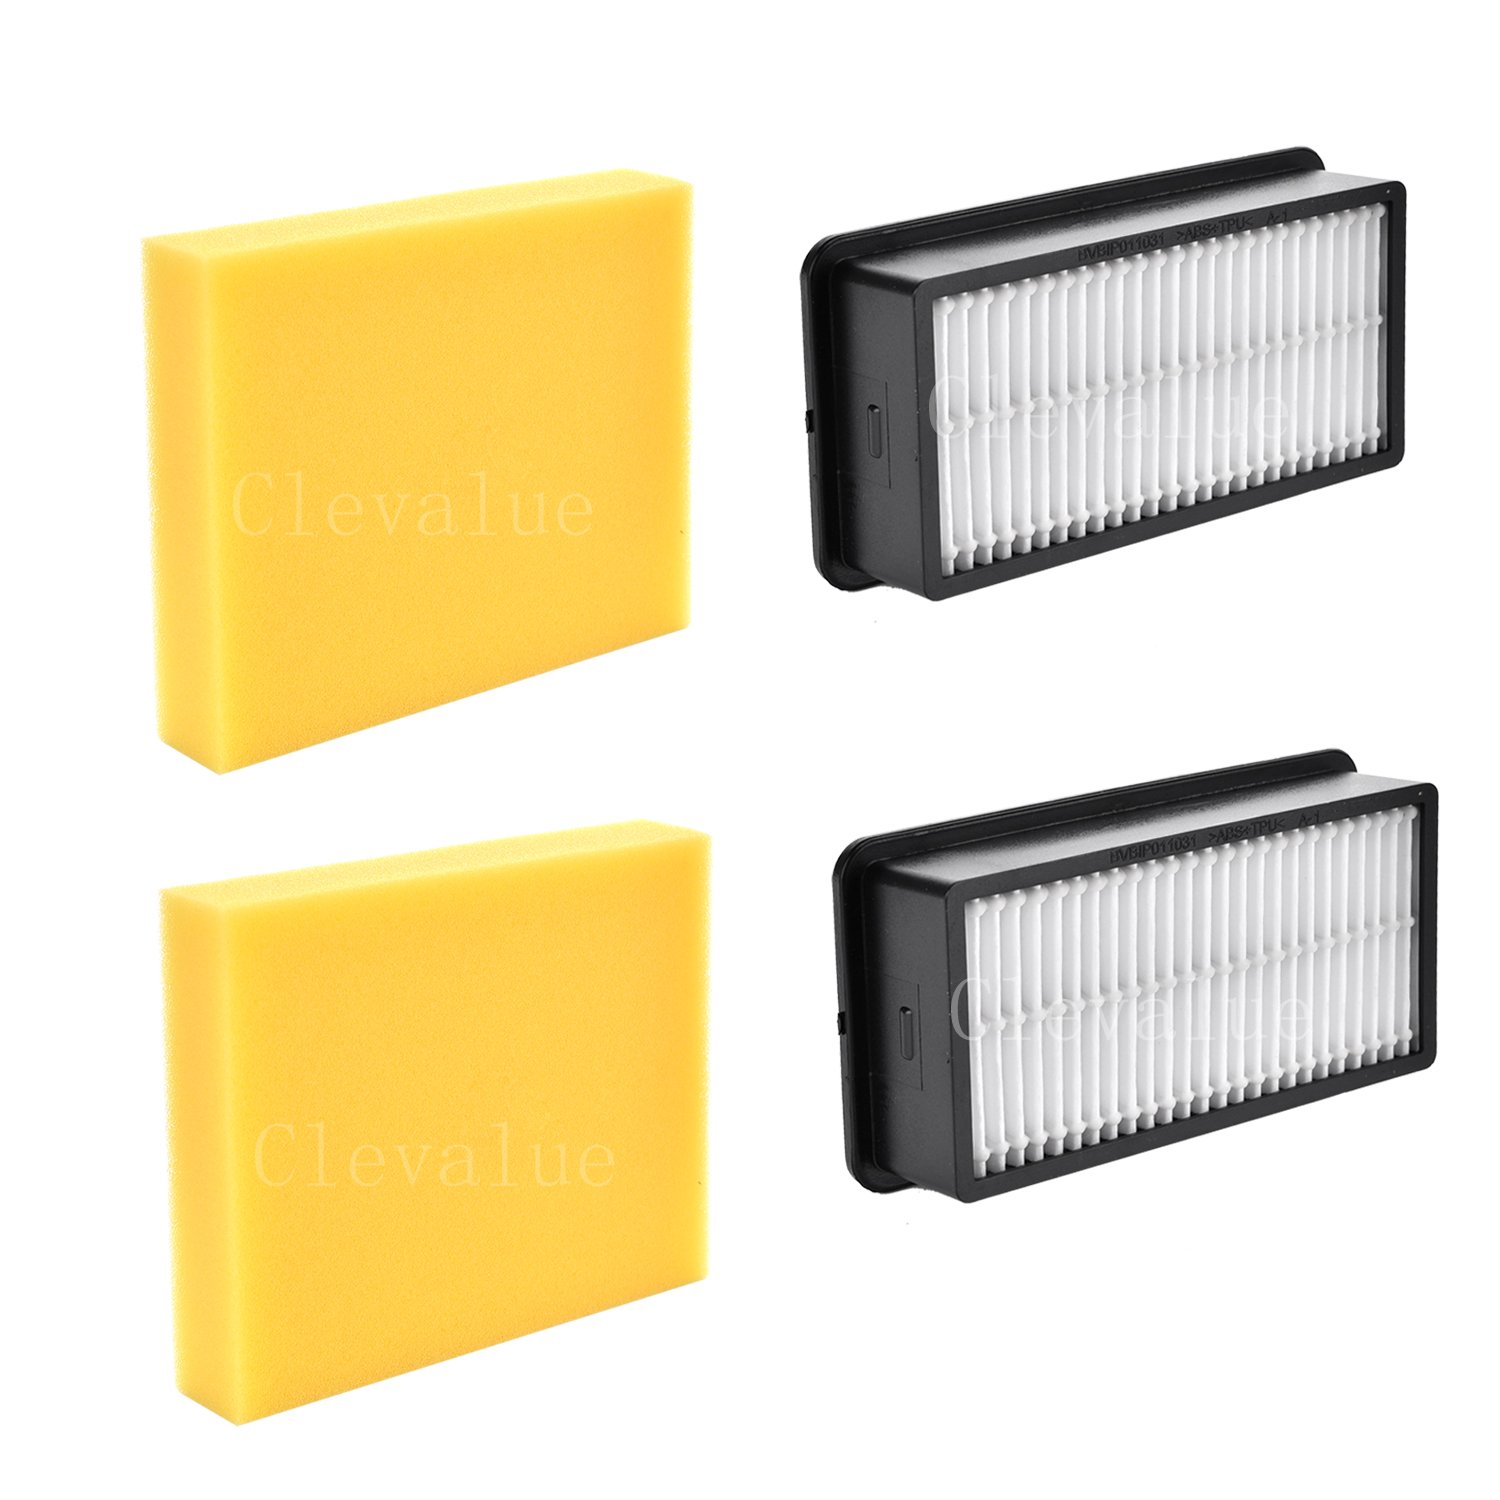 Clevalue Replacement for Bissell Style 1008 Filter Pack for CleanView Upright Vacuums-2pack by Clevalue